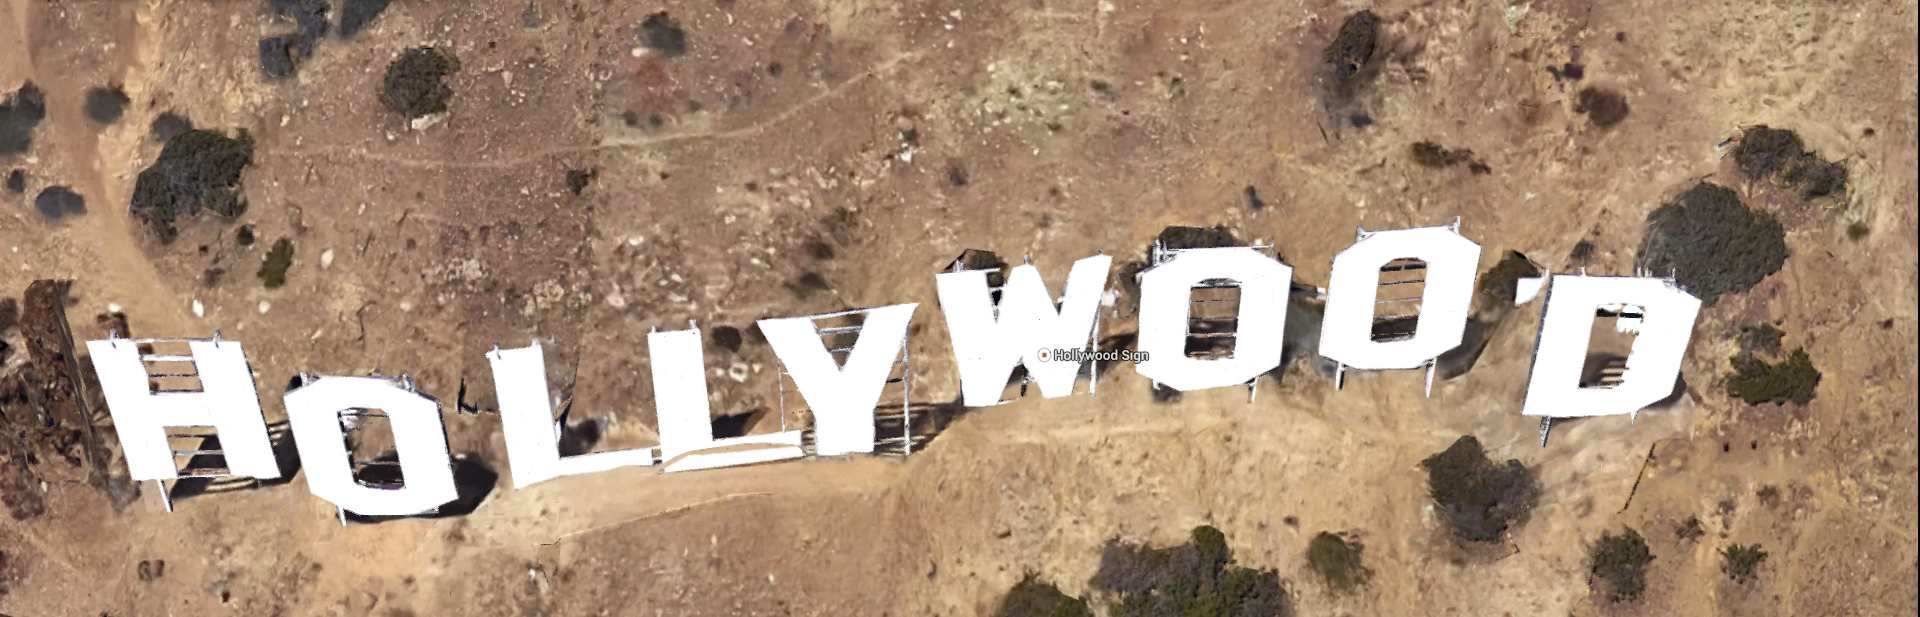 Hollywood Sign March 12 2015 Google Satellite Overhead Tilt View one click out